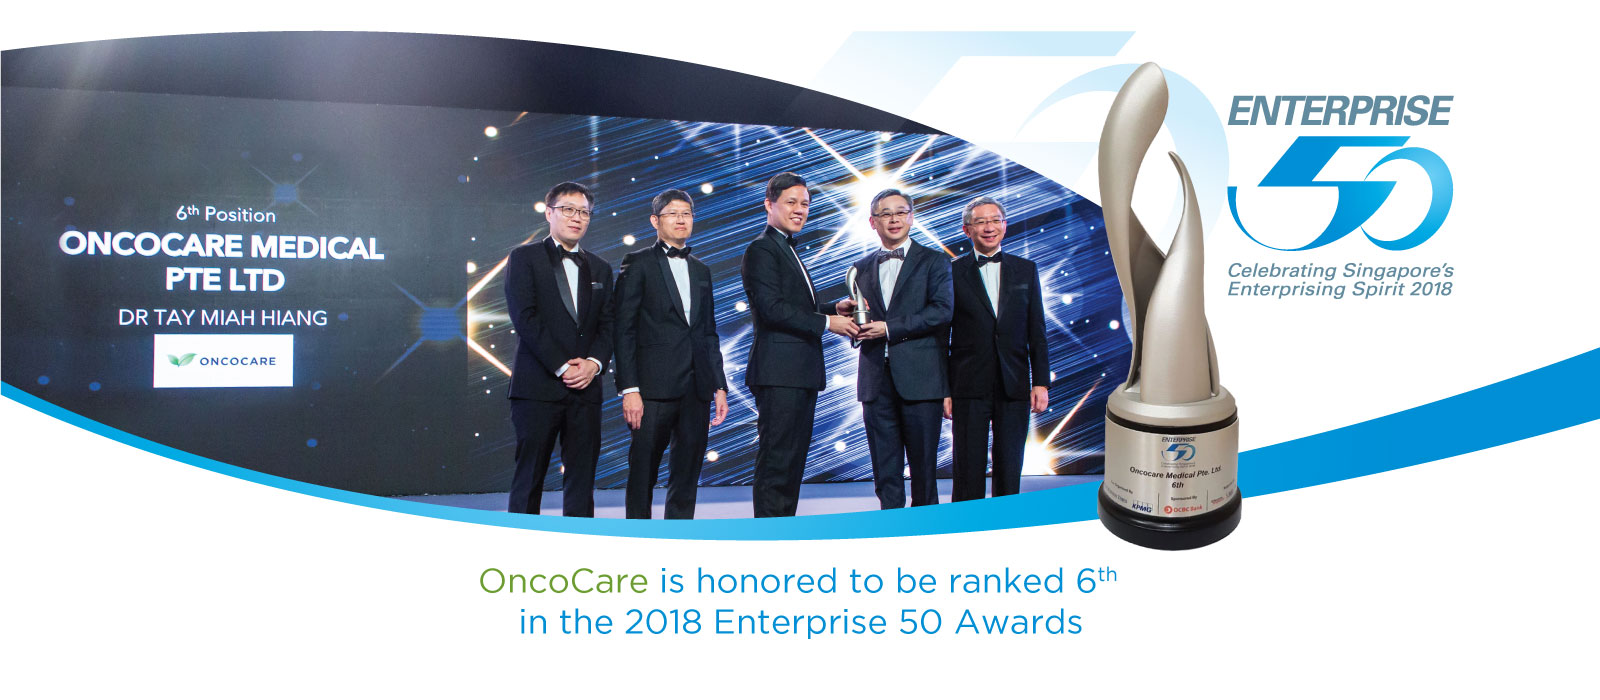 OncoCare awarded Enterprise 50 Awards of the year 2018